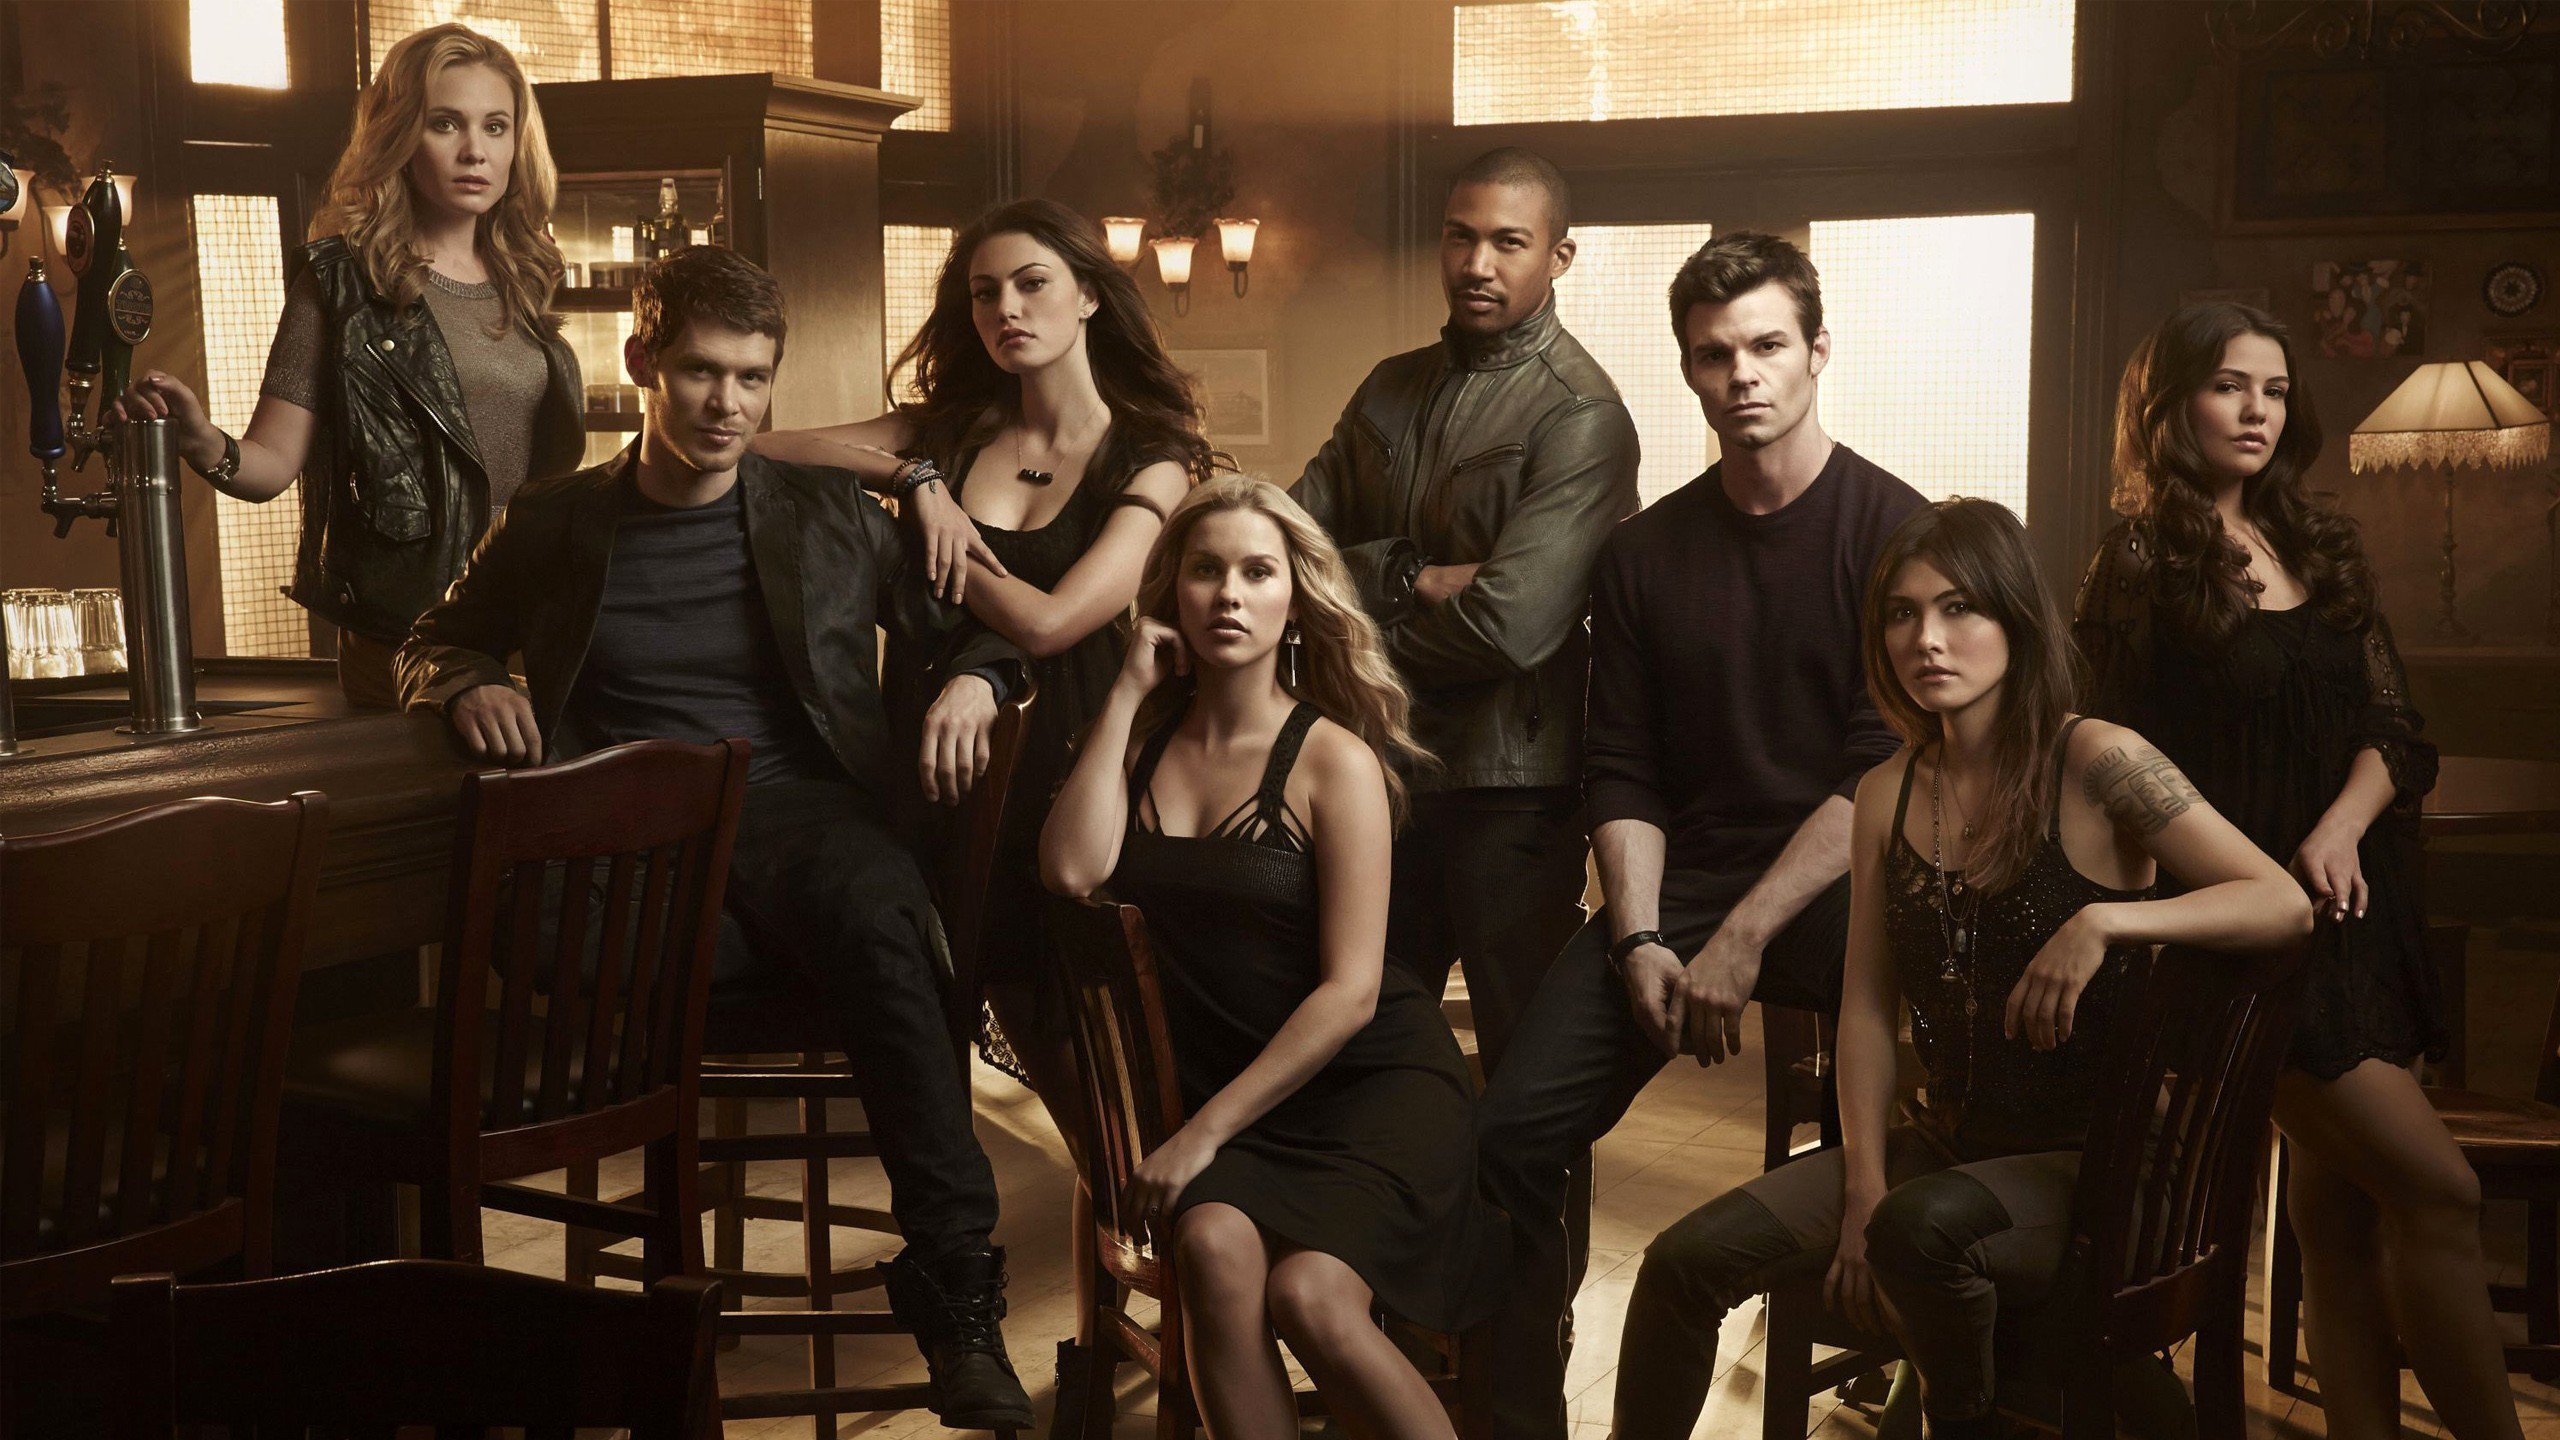 The Originals Season 3 Hd Tv Shows 4k Wallpapers Images